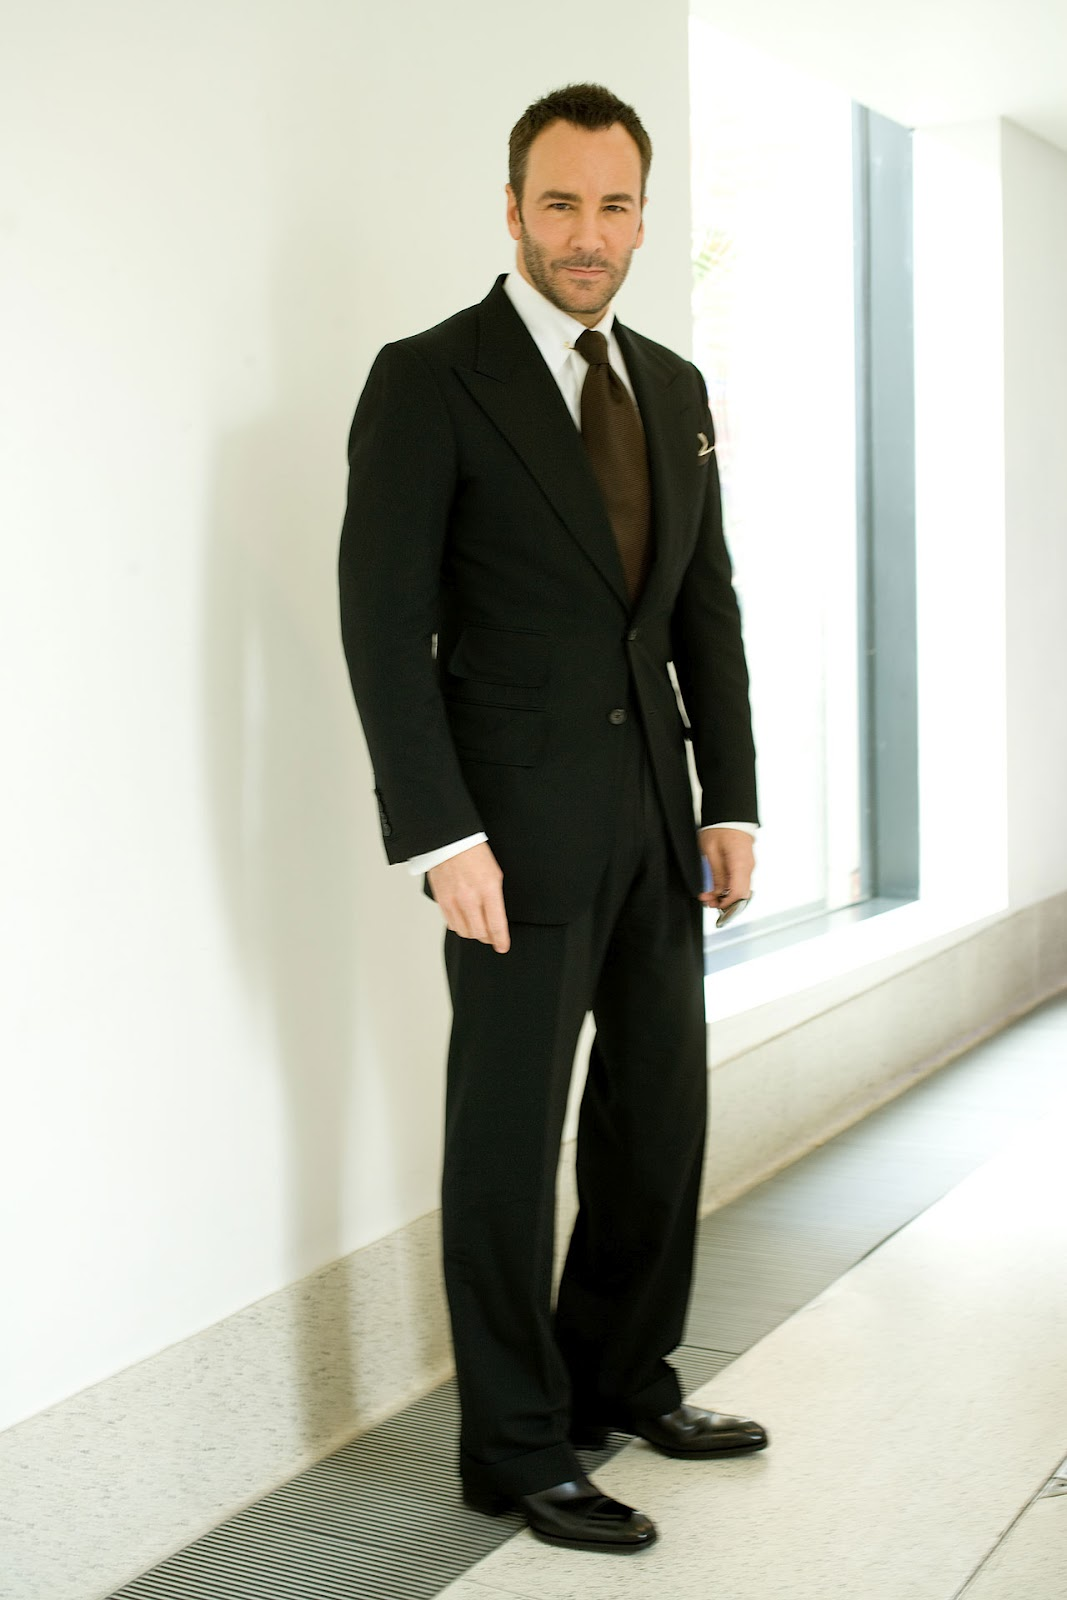 What he wearing tom ford at the vogue festival jpg 1067x1600 Tom ford suit fcc73d7b16f0